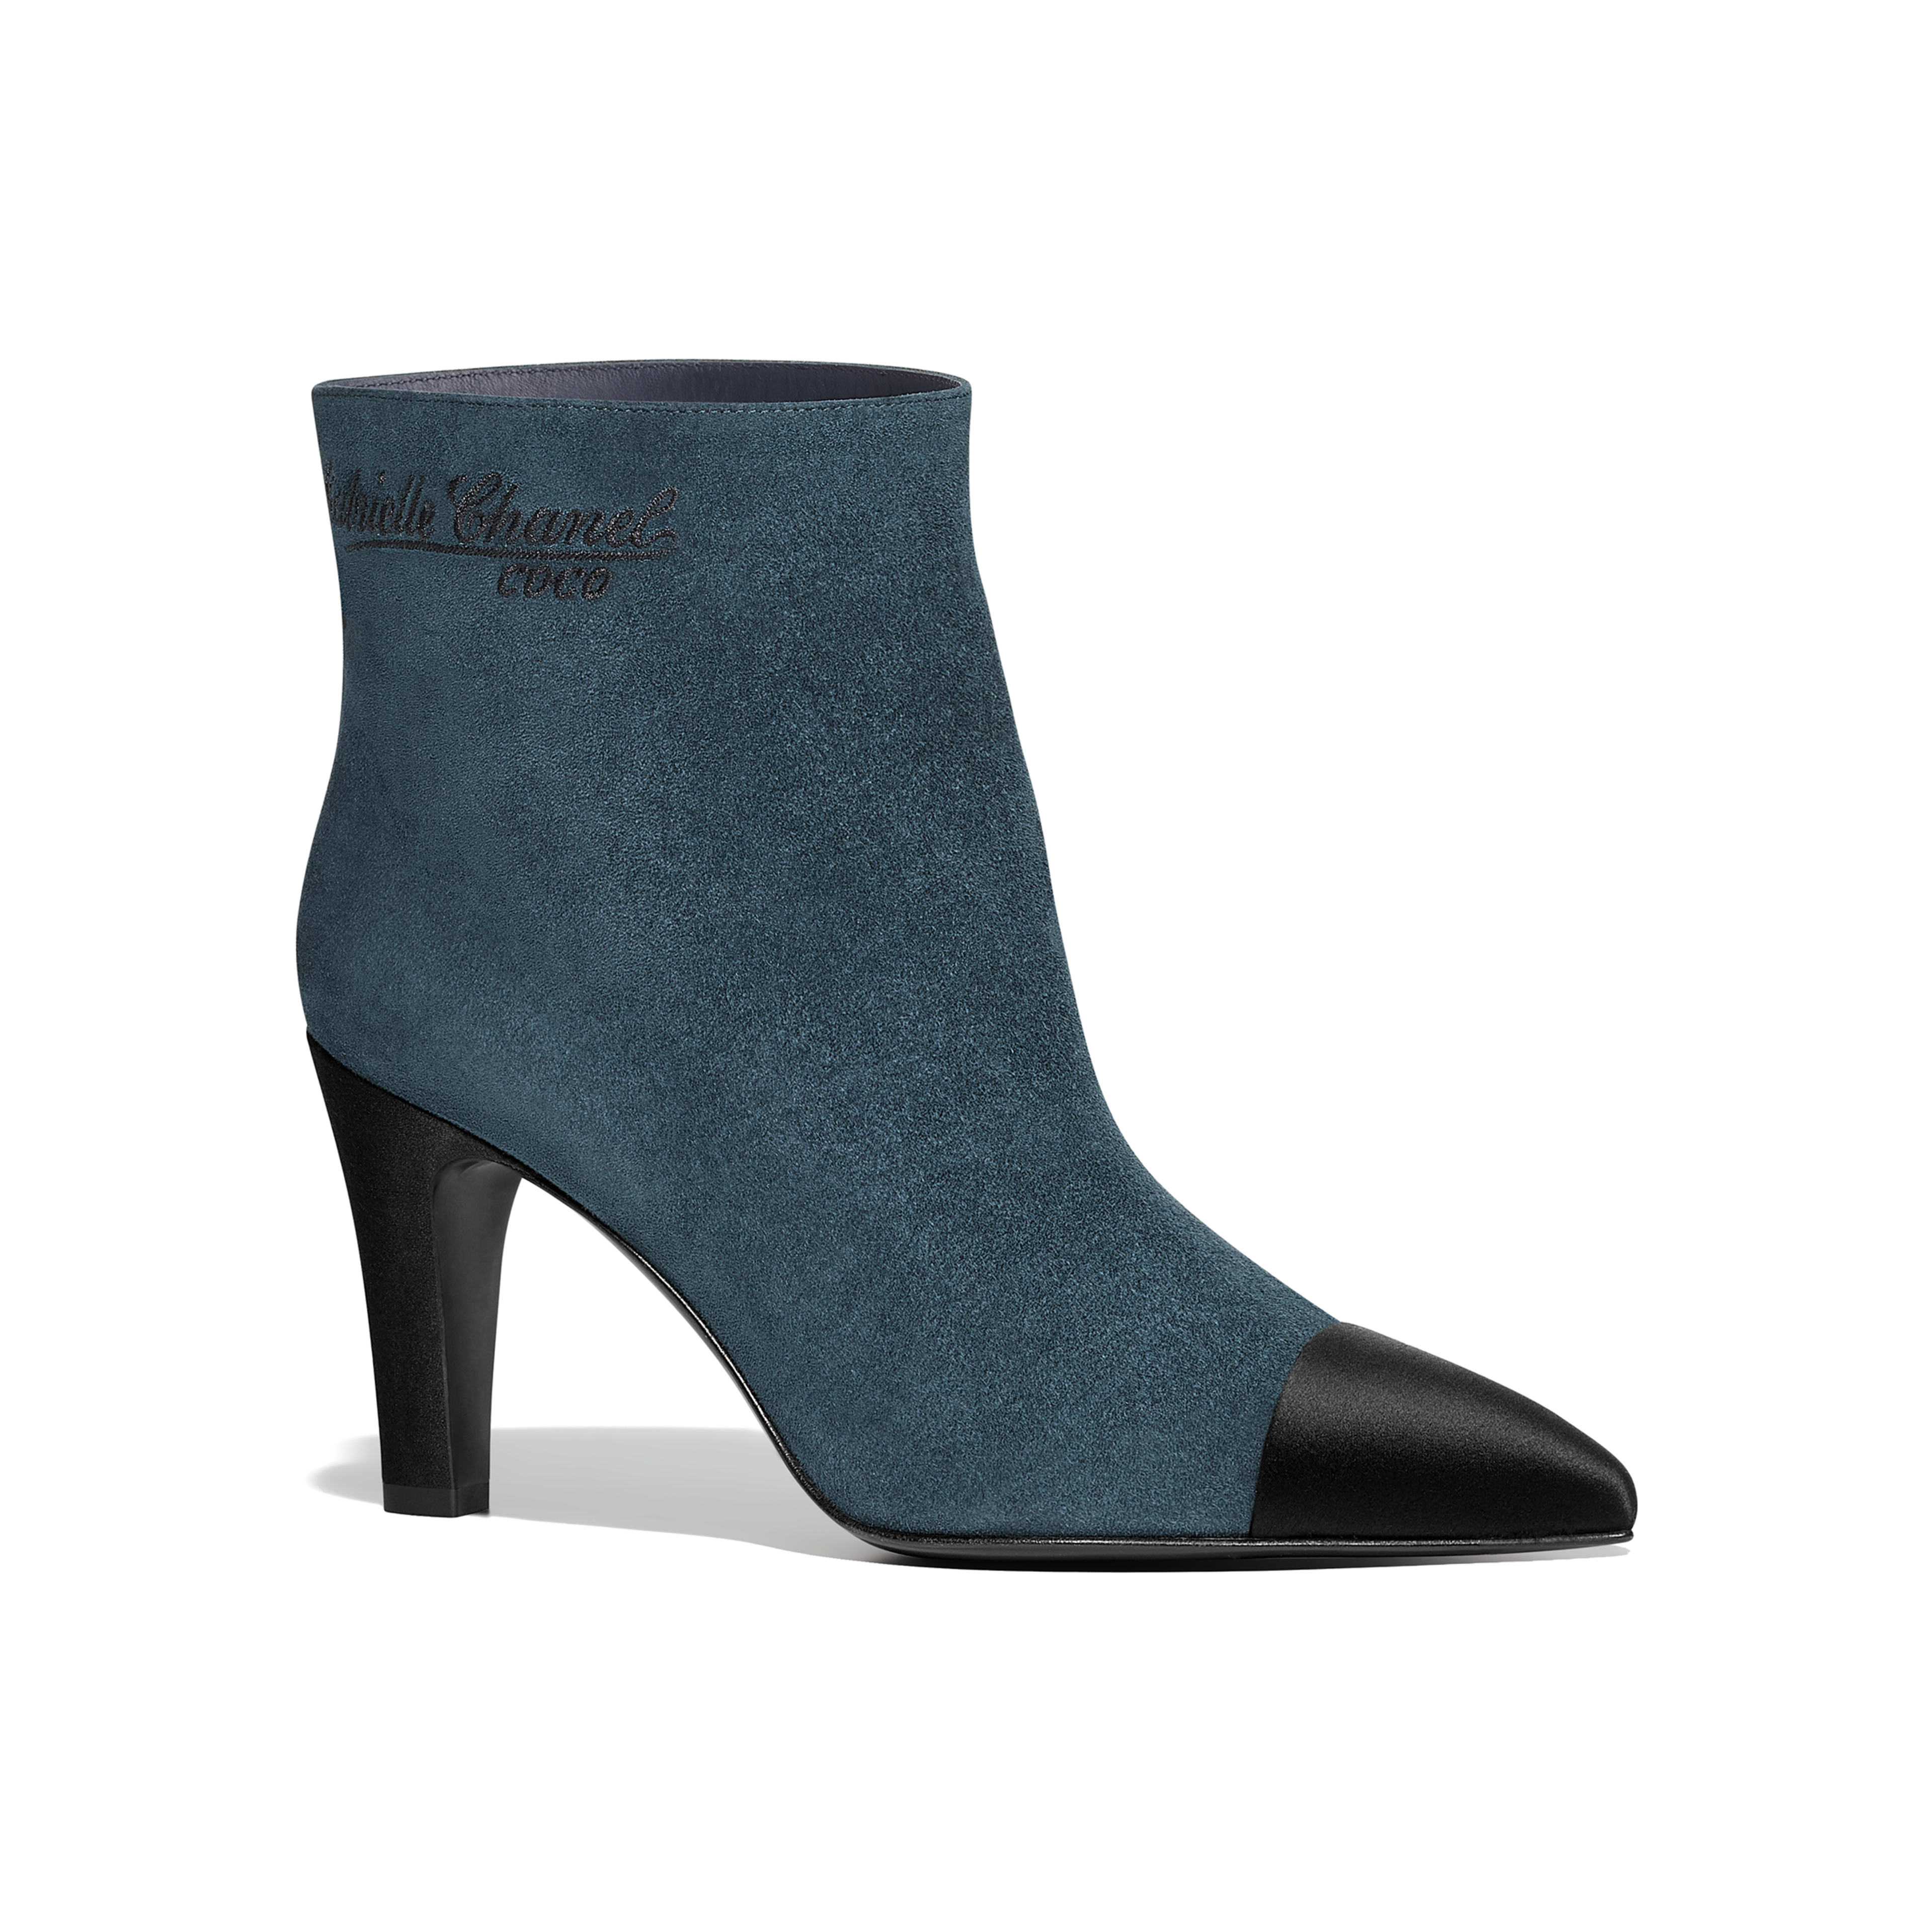 Short Boots - Blue & Black - Suede Calfskin & Satin - Default view - see full sized version